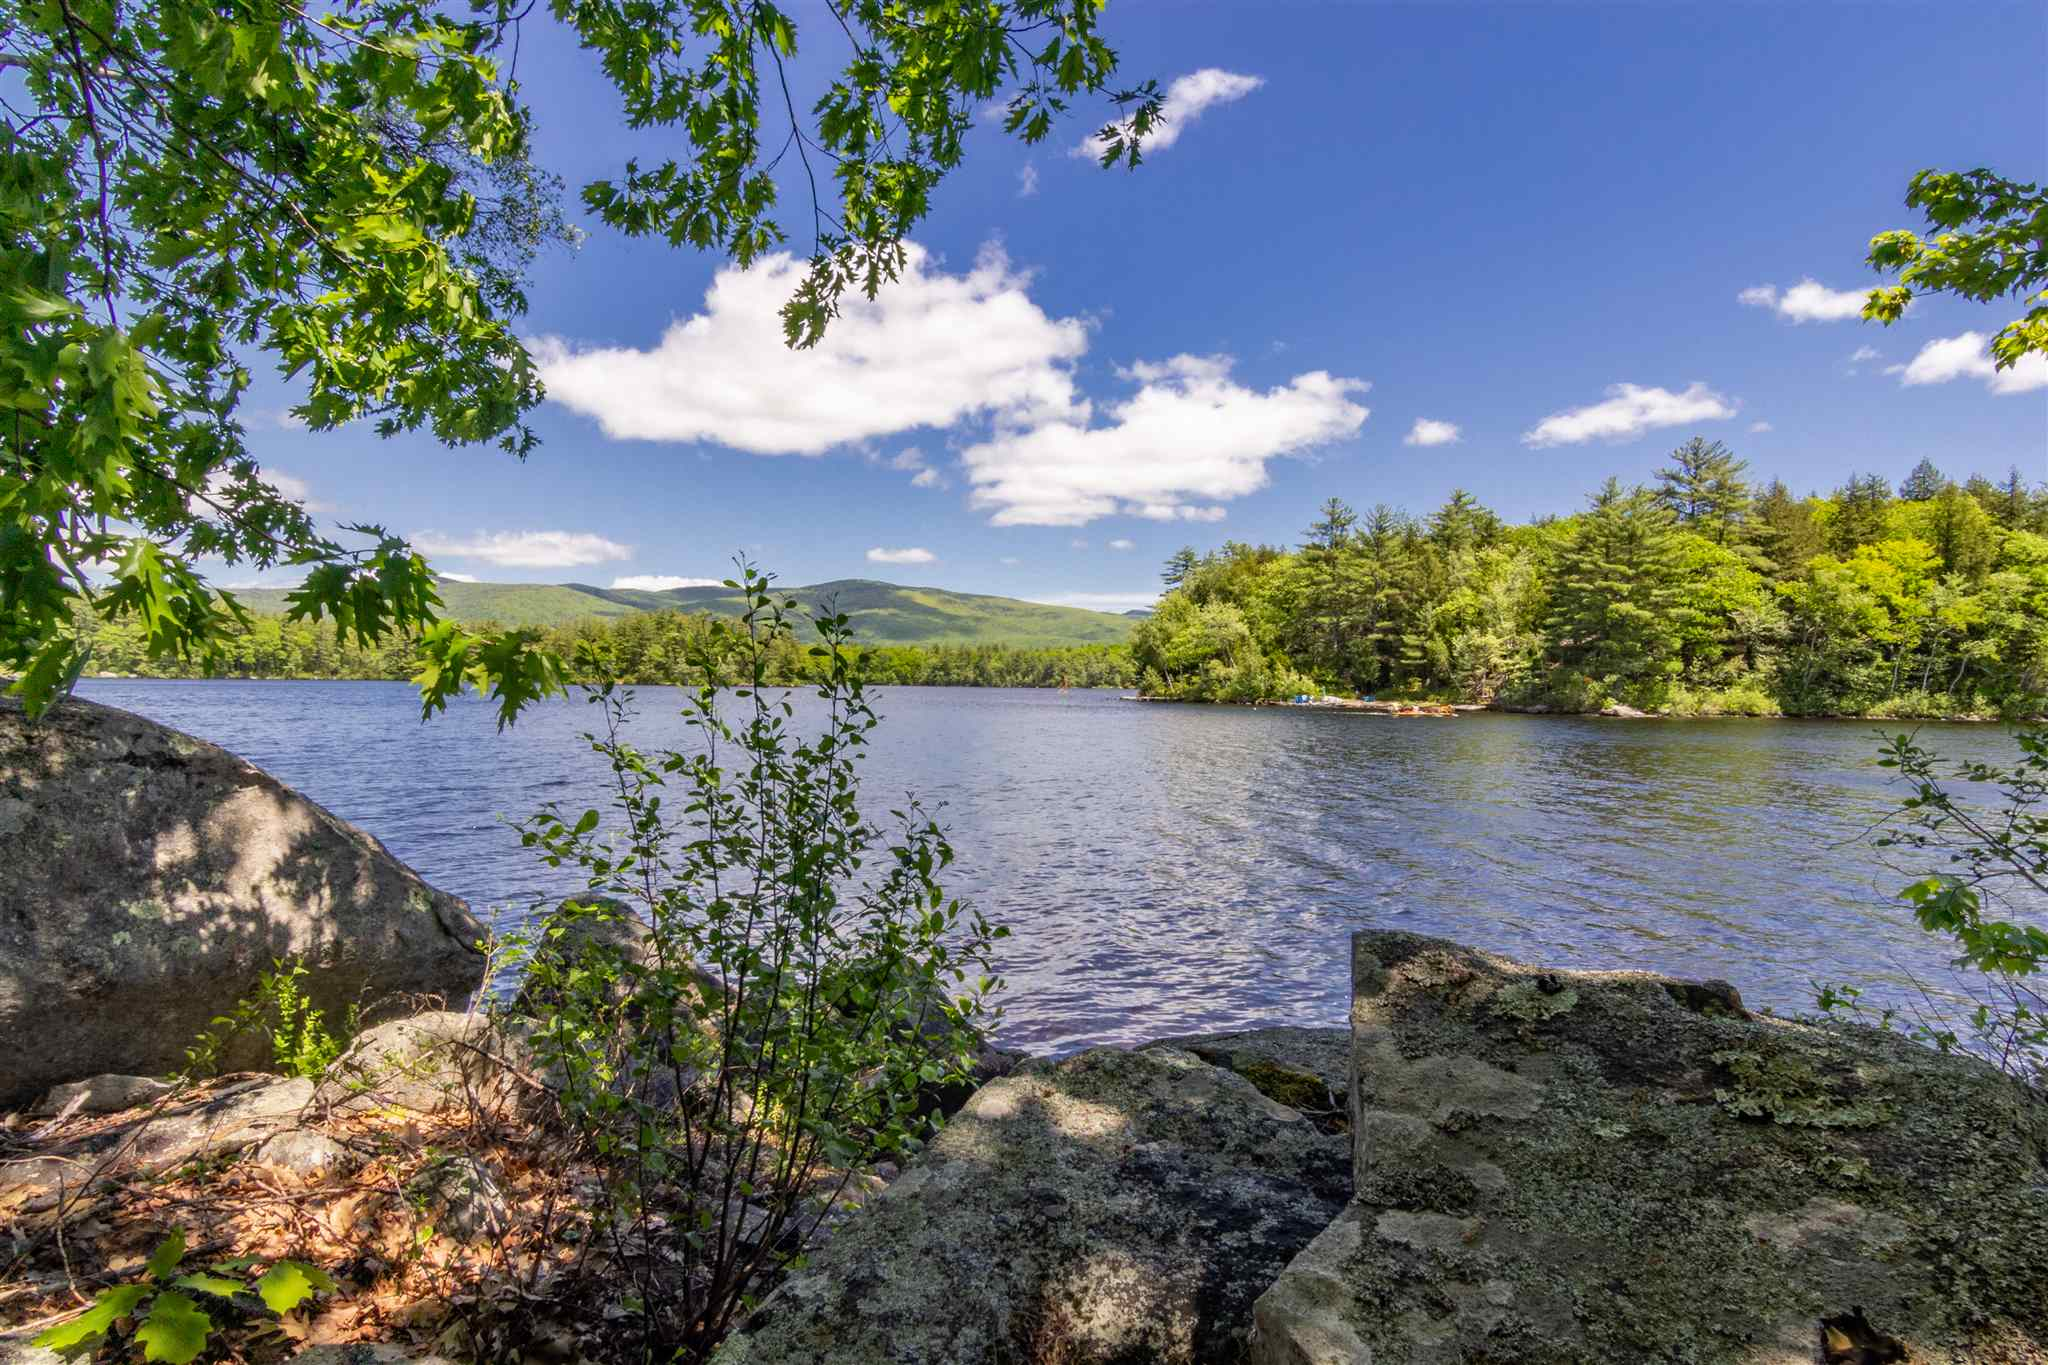 Pond Lees waterfront home for sale in Moultonborough